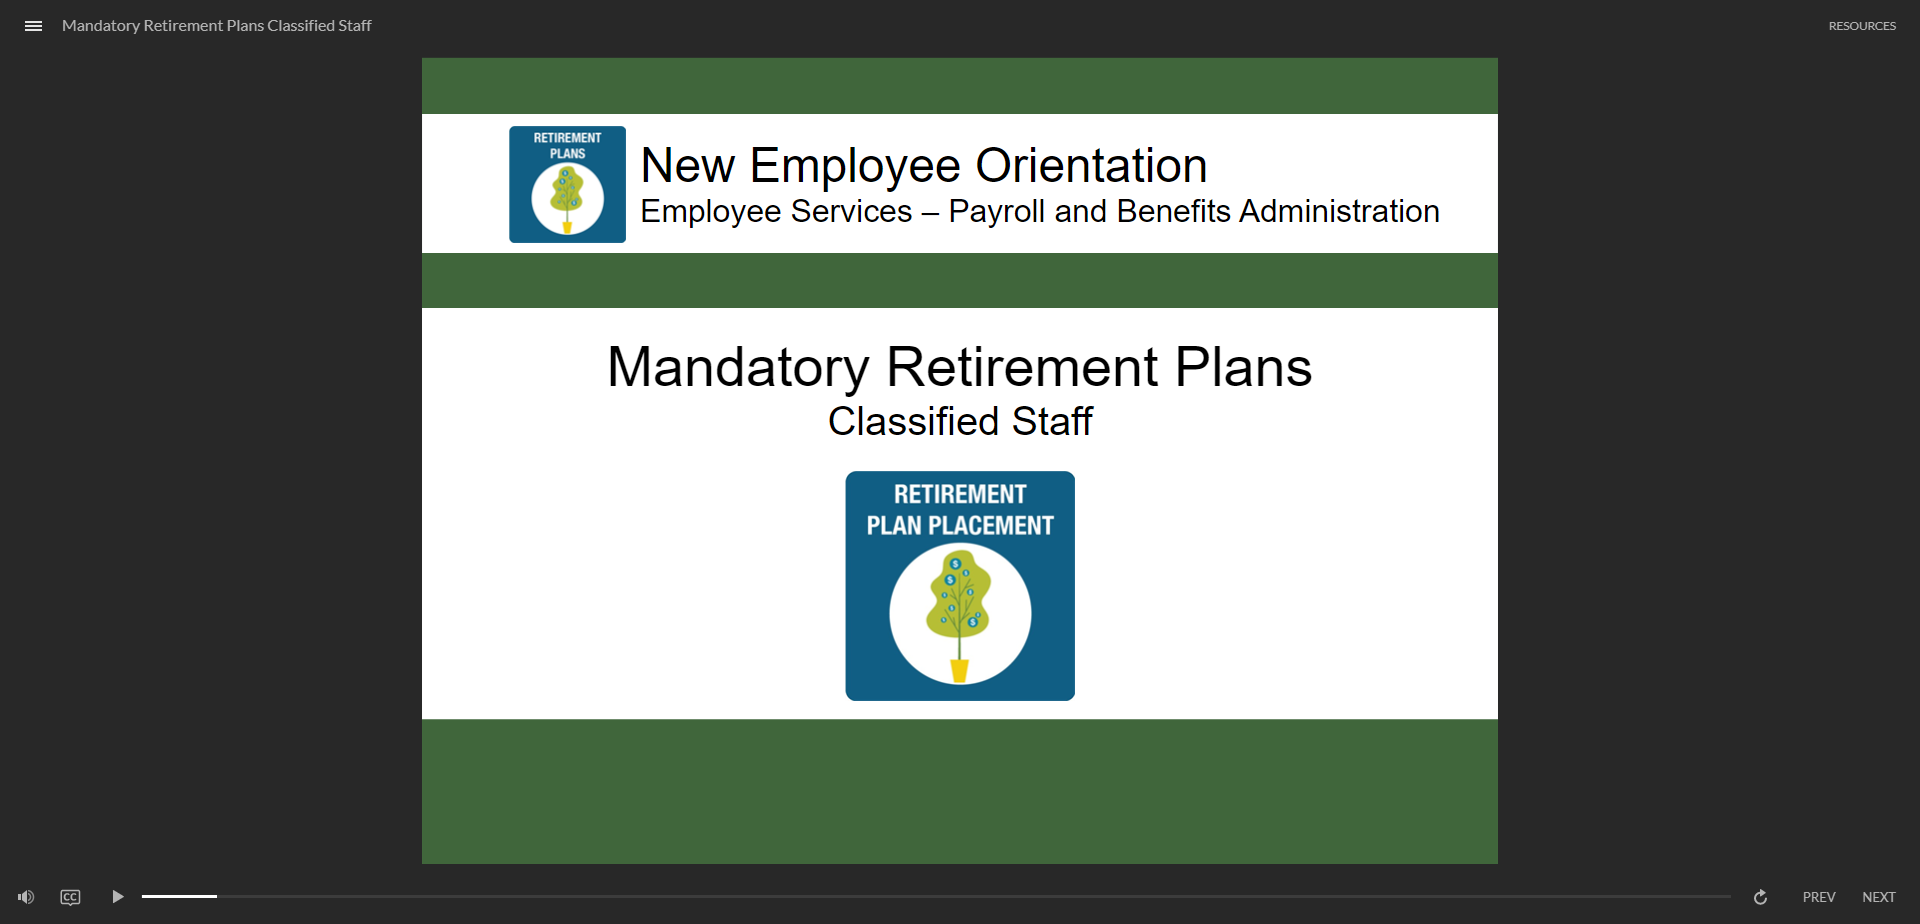 Mandatory Retirement Plans for Classified Staff - click to watch course